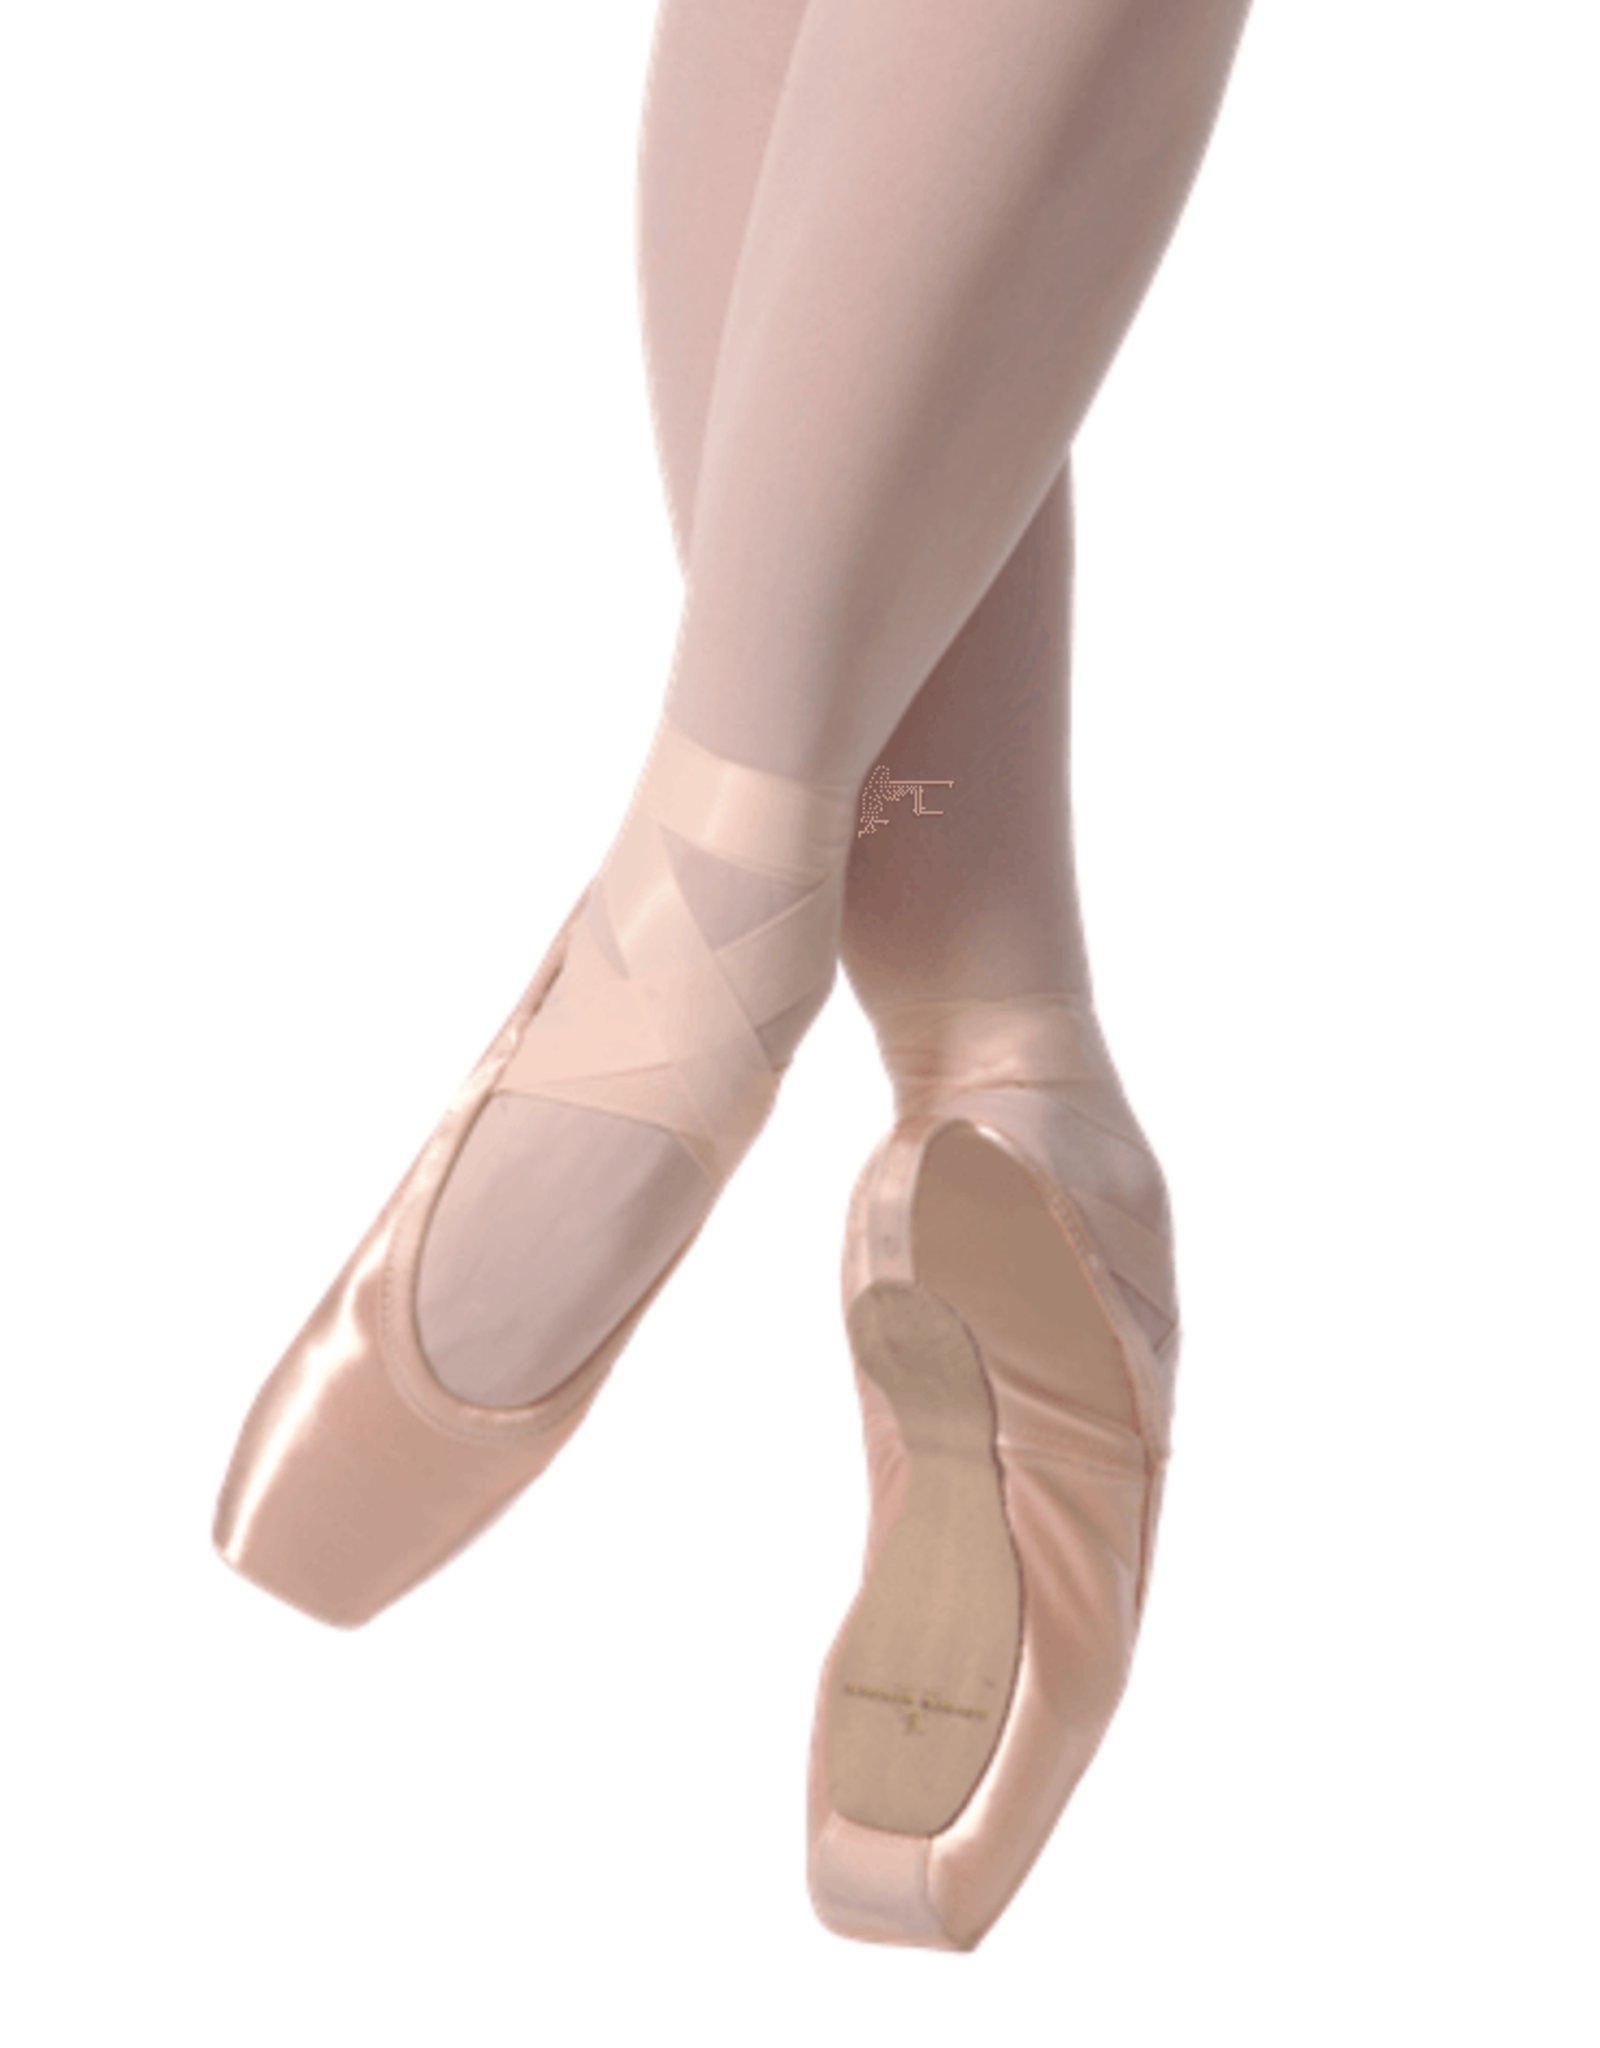 GAYNOR MINDEN CLASSIC FIT EXTRAFLEX SHANK DEEP VAMP HIGH HEEL POINTE SHOES